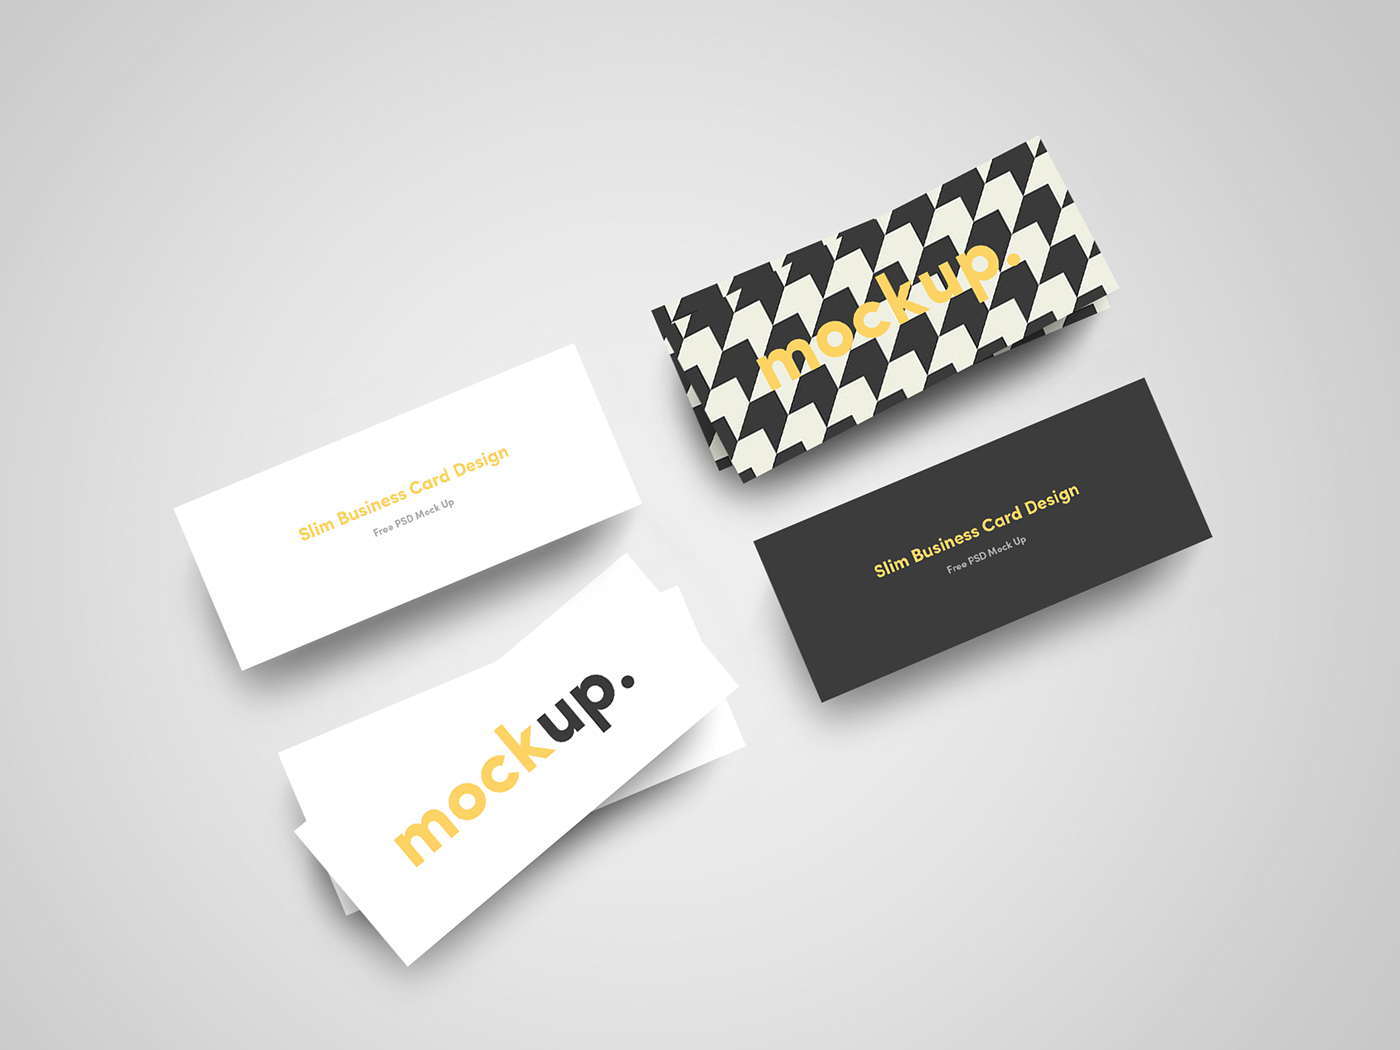 slim business cards - Mado.sahkotupakka.co